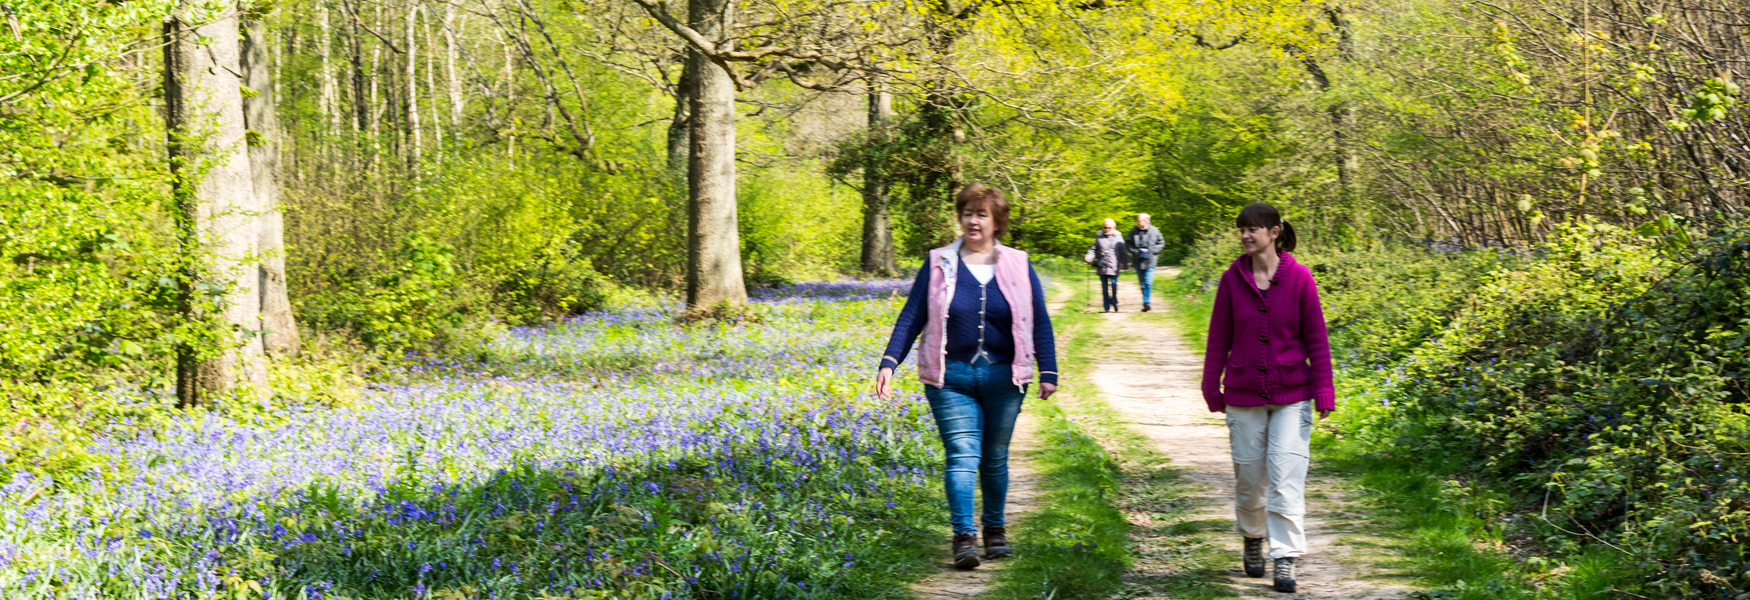 Walking through the bluebells at Hucking Estate